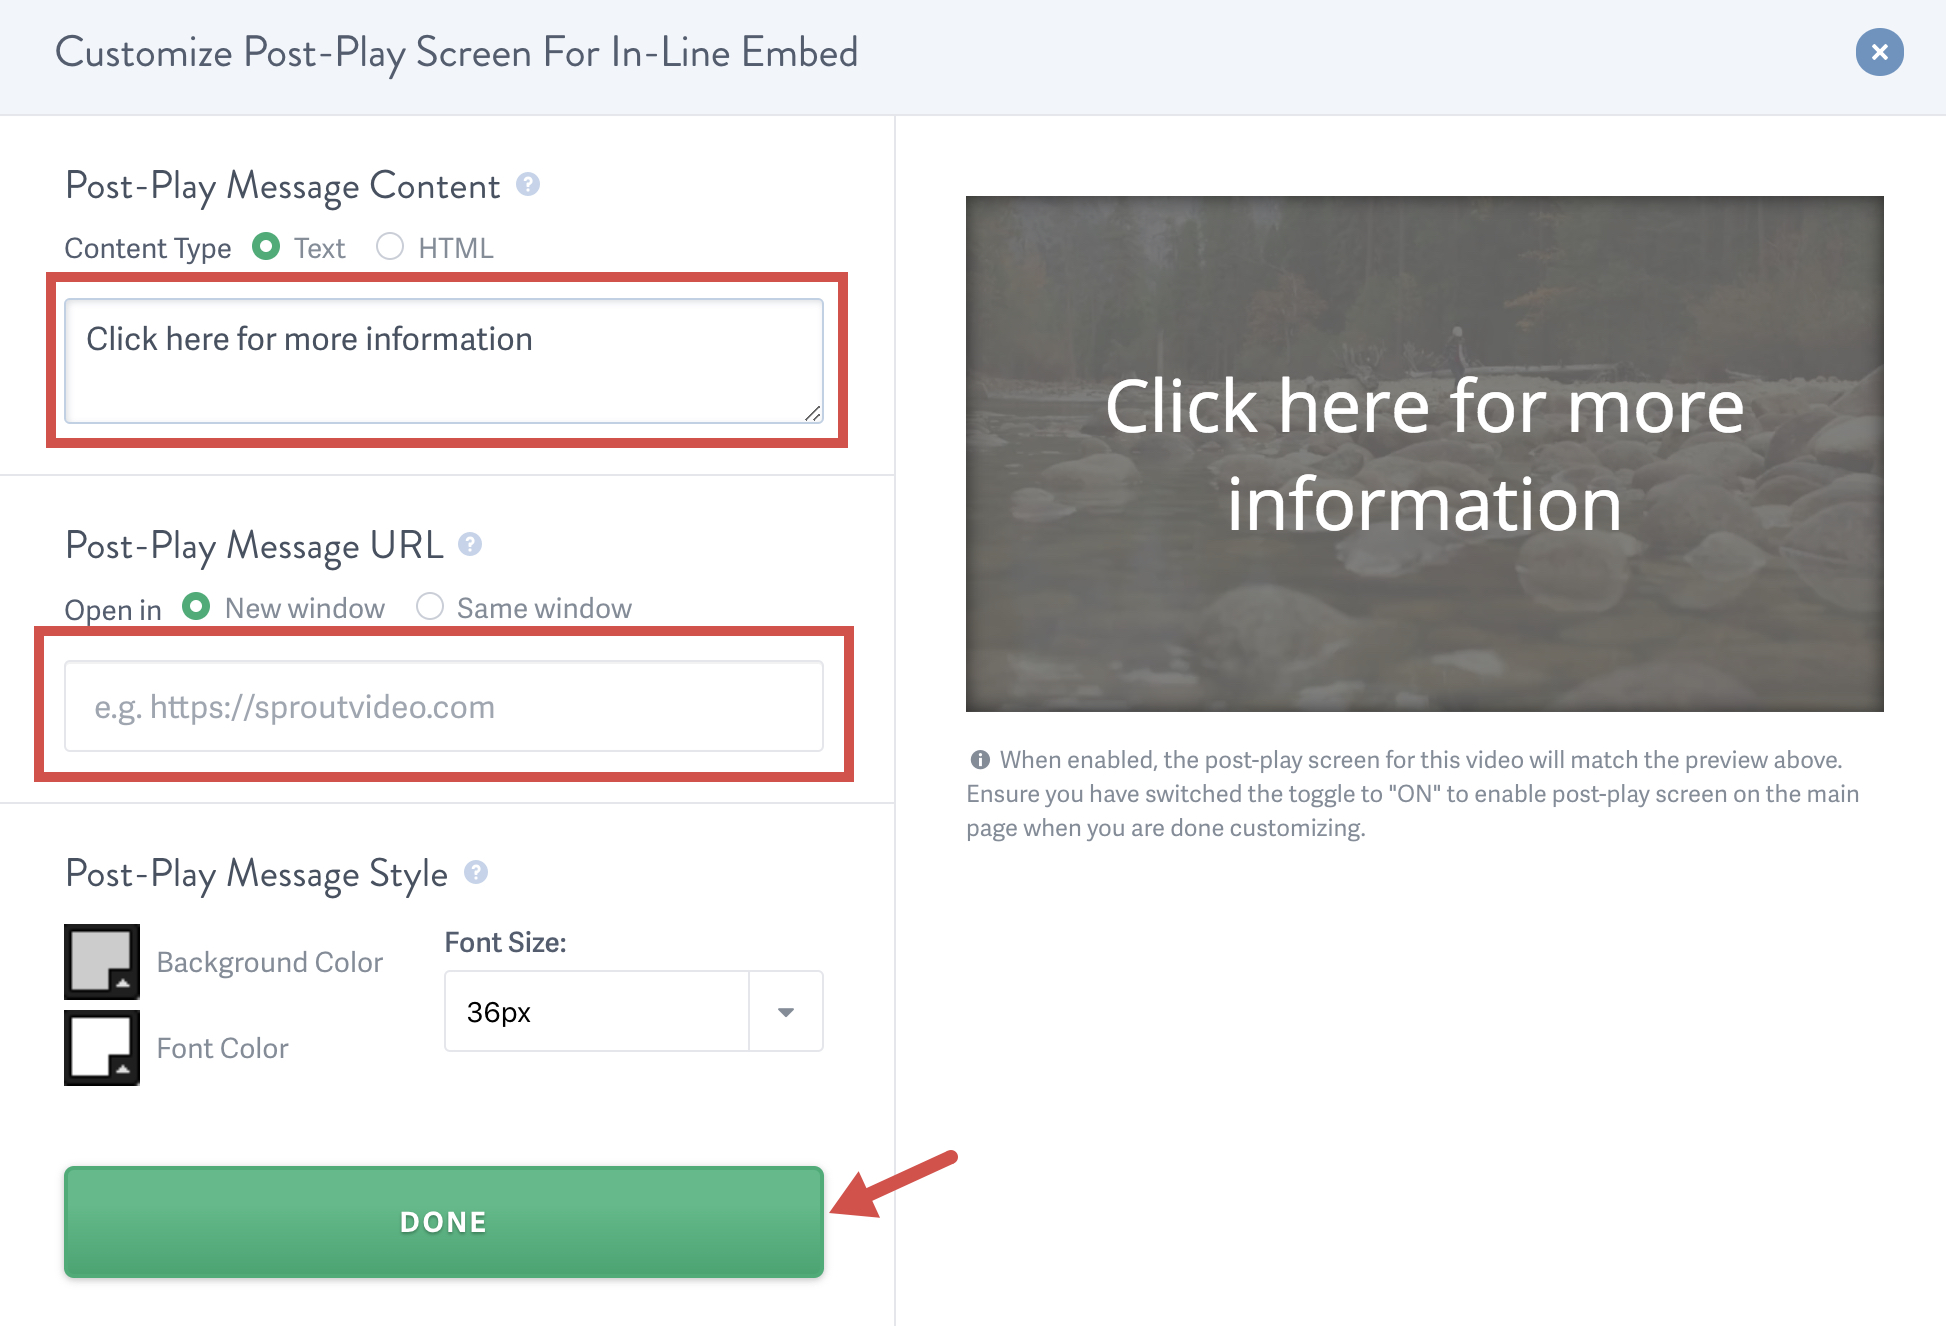 Enable the post-play screen for your video hosted on SproutVideo